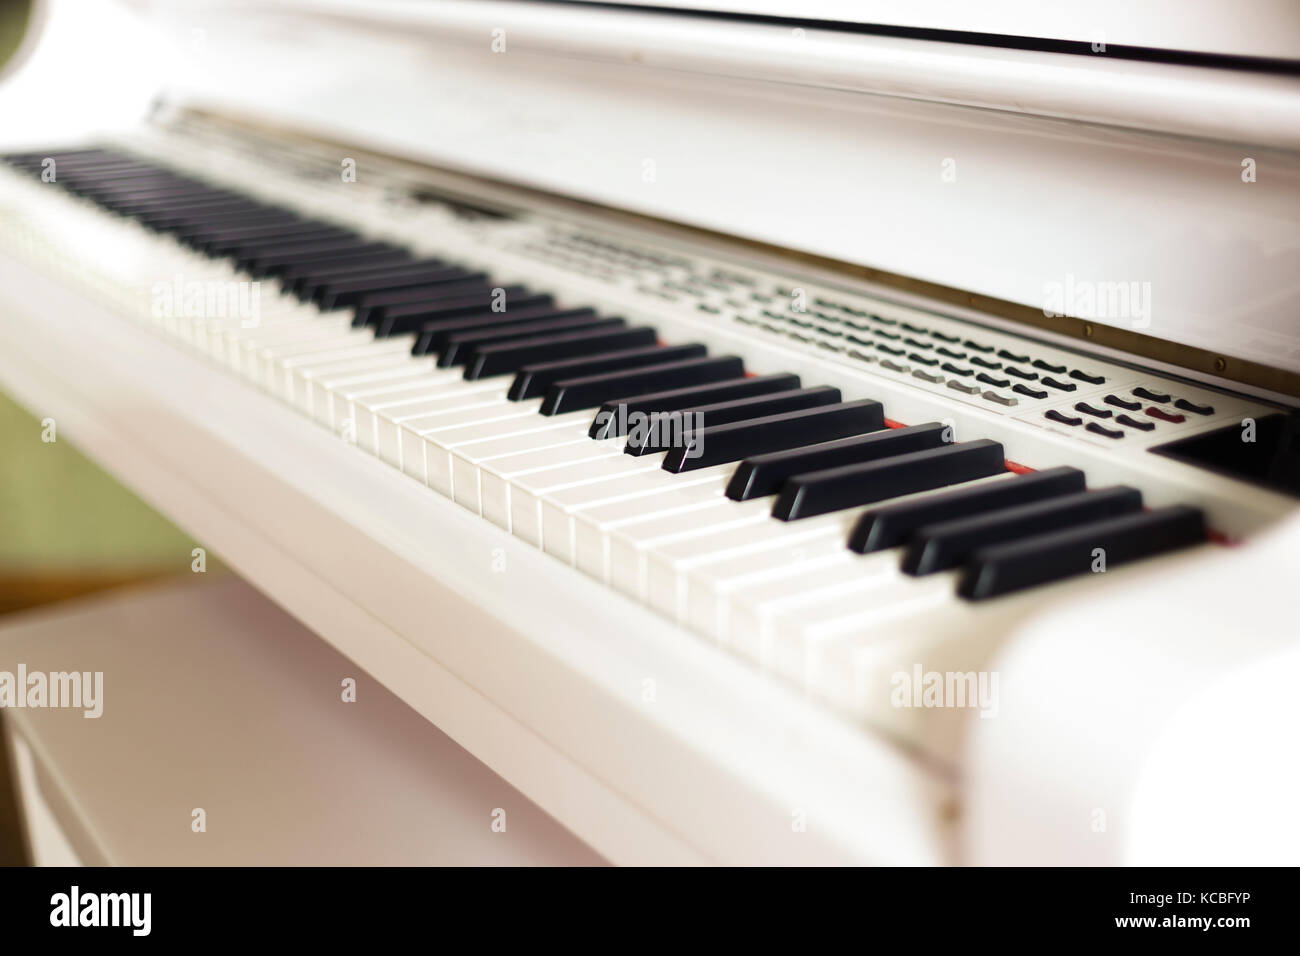 background of electronic grand piano keyboard, close up - Stock Image